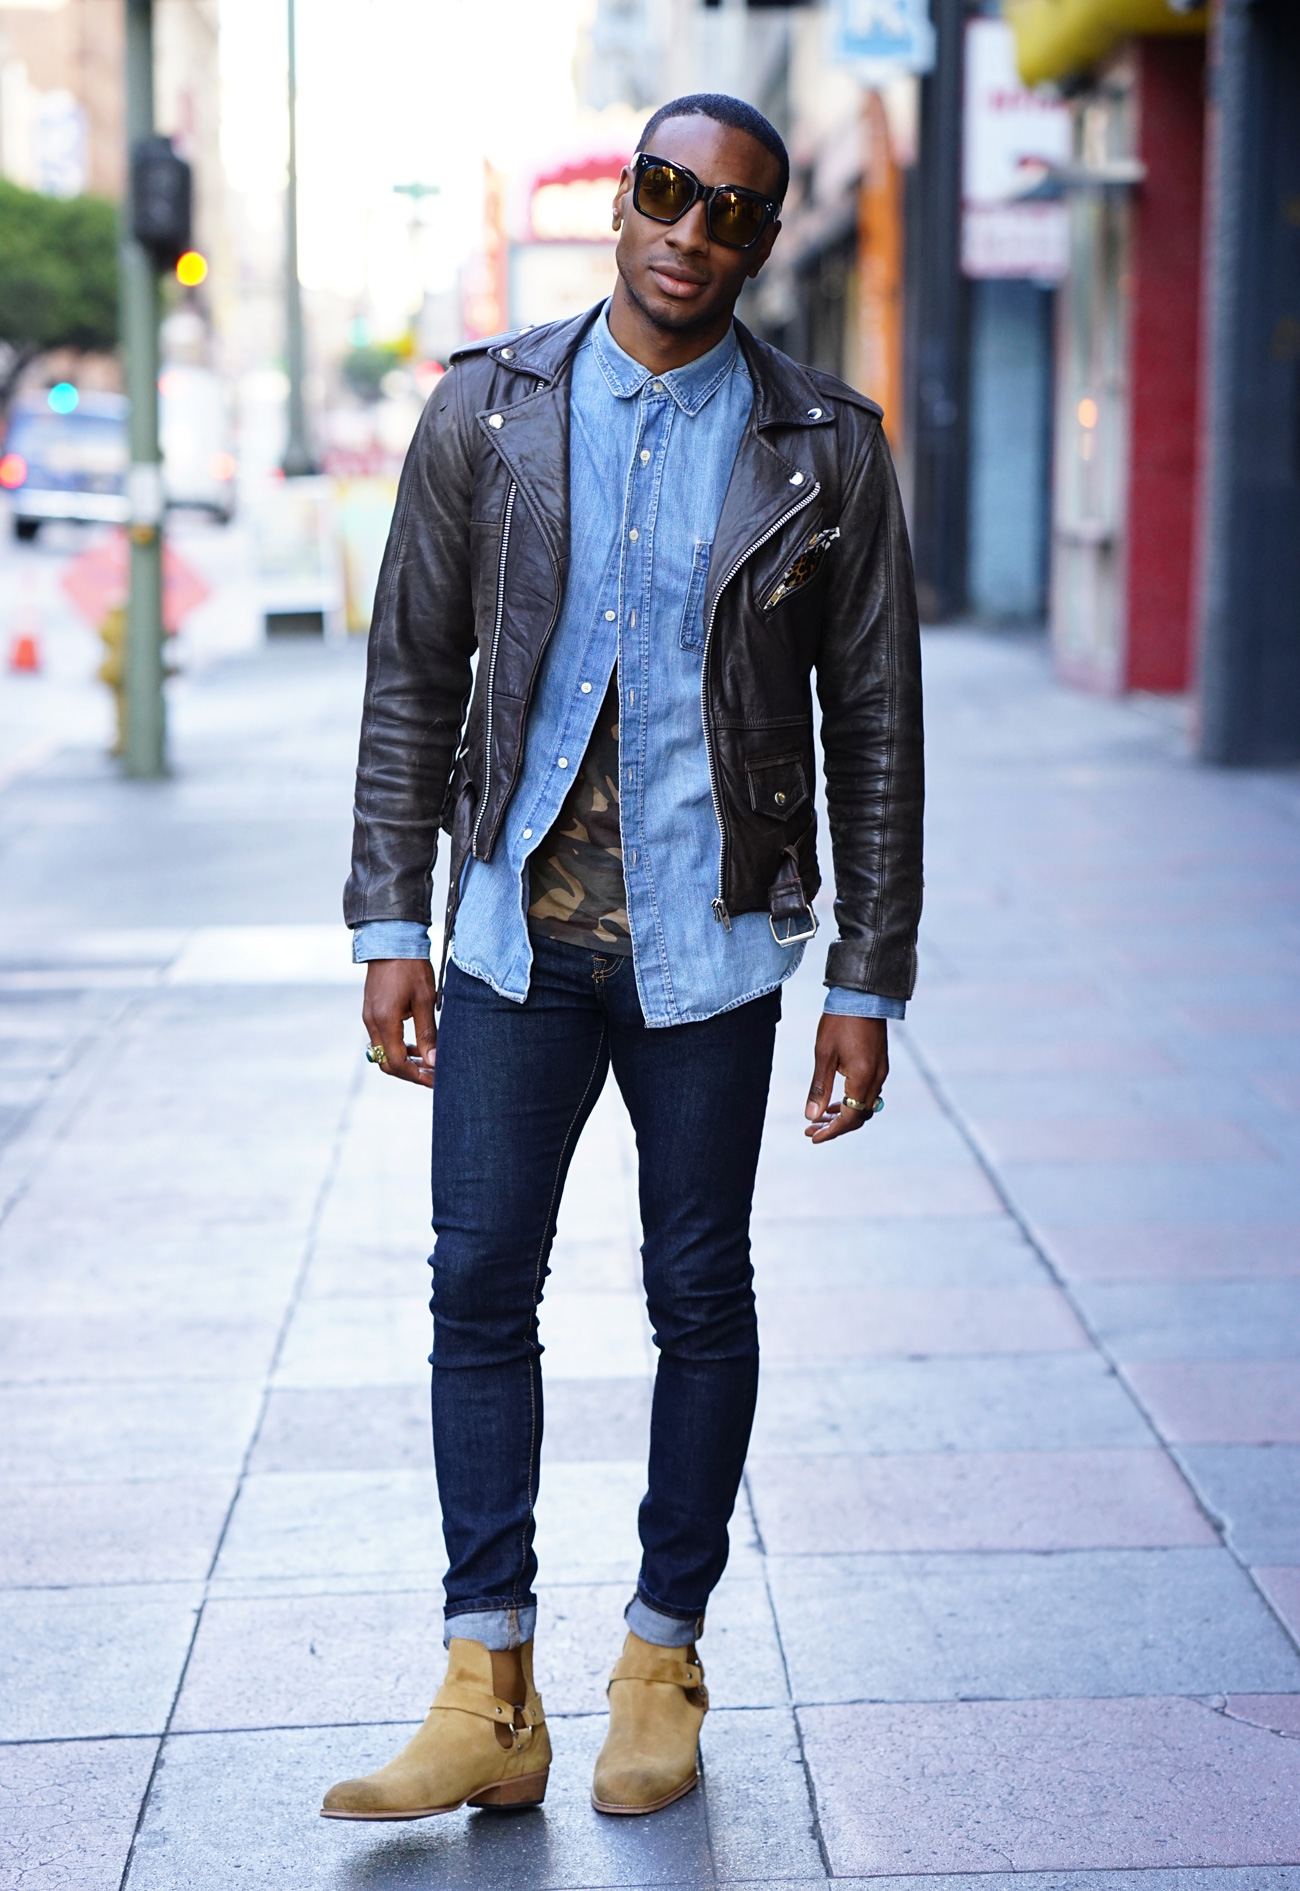 Ootd Chelsea Boots Leather Jacket Norris Danta Ford